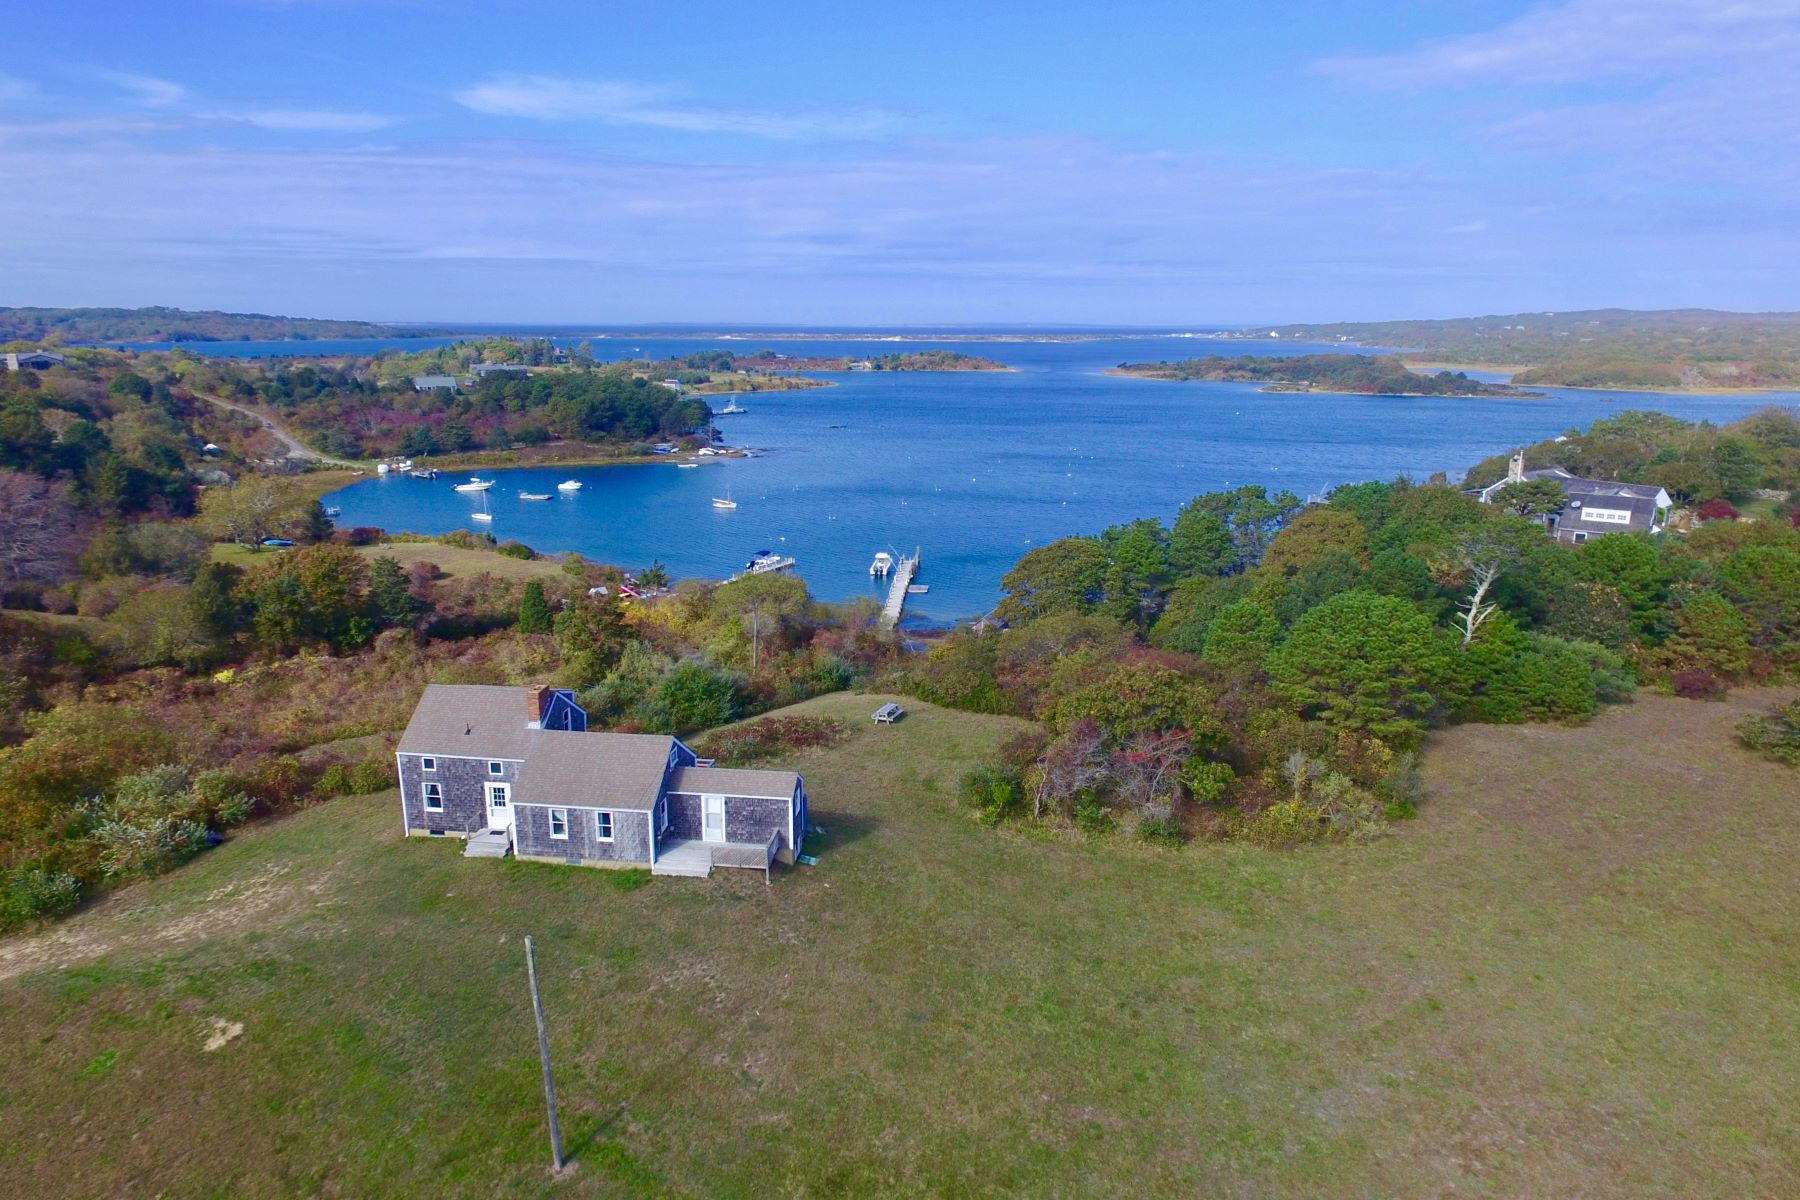 Single Family Home for Sale at Waterfront on Quitsa Pond 199 State Road Chilmark, Massachusetts 02535 United States